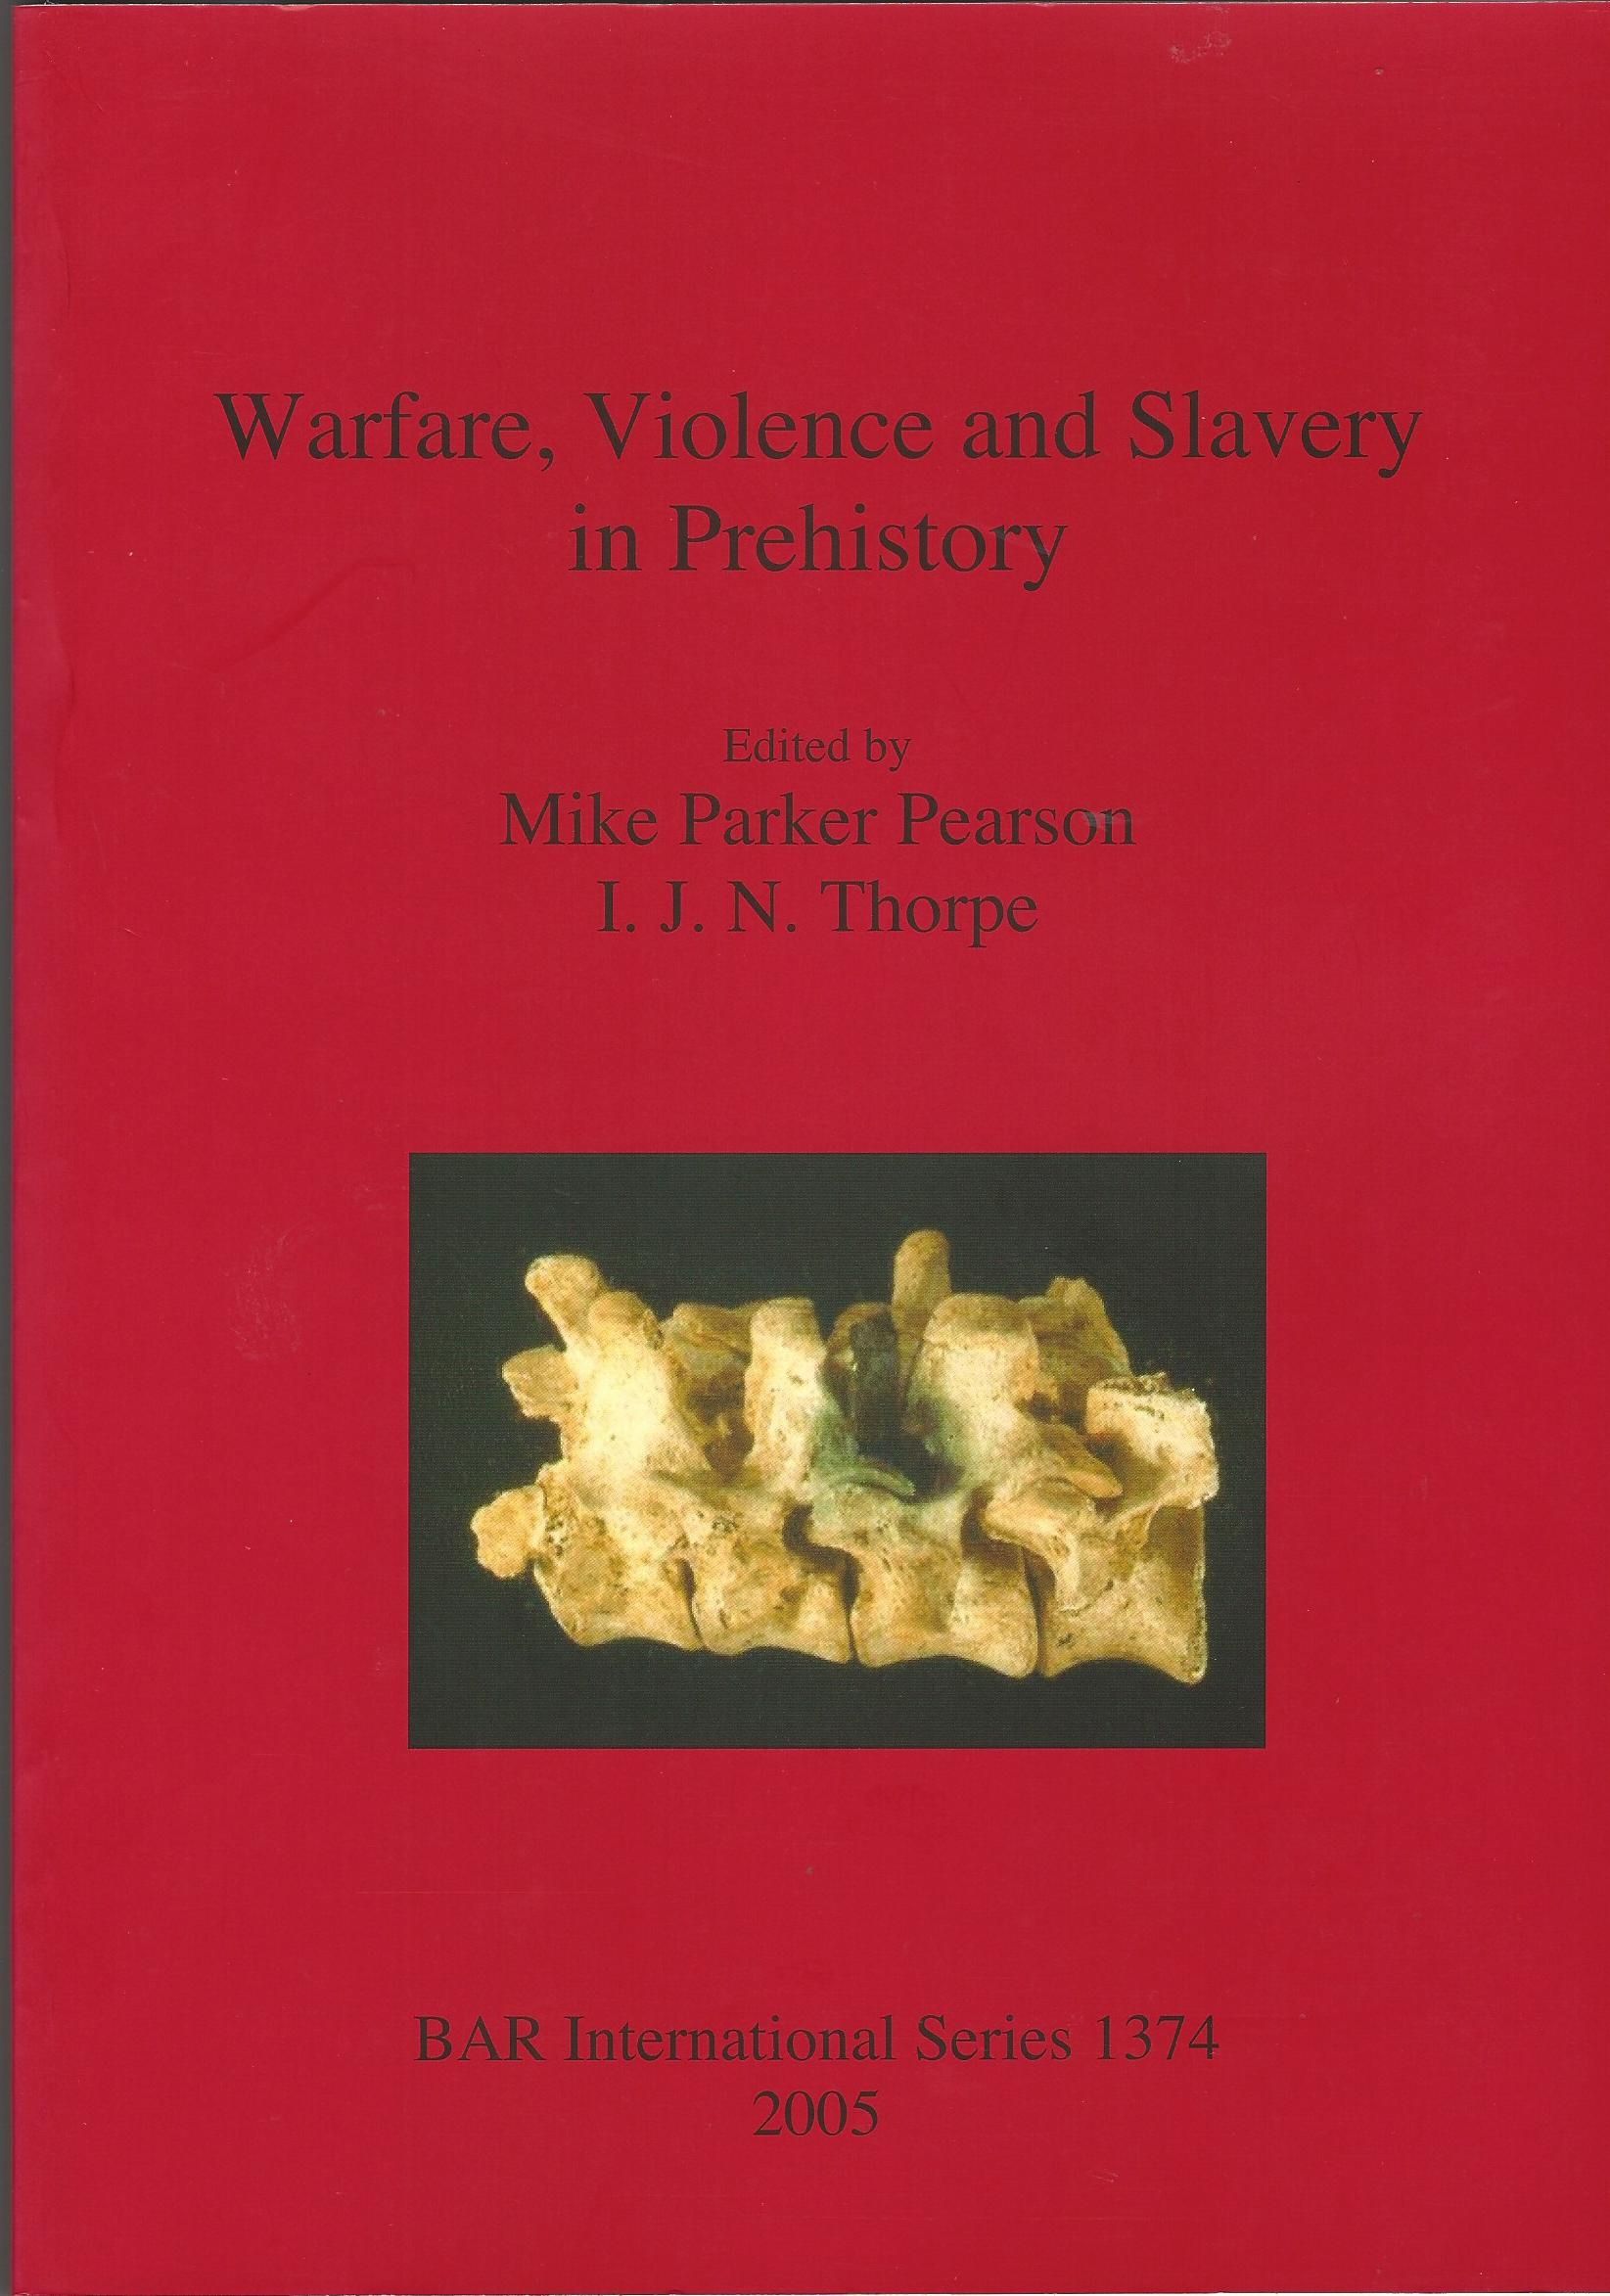 Image for Warfare, Violence and Slavery in Prehistory (BAR International Series)